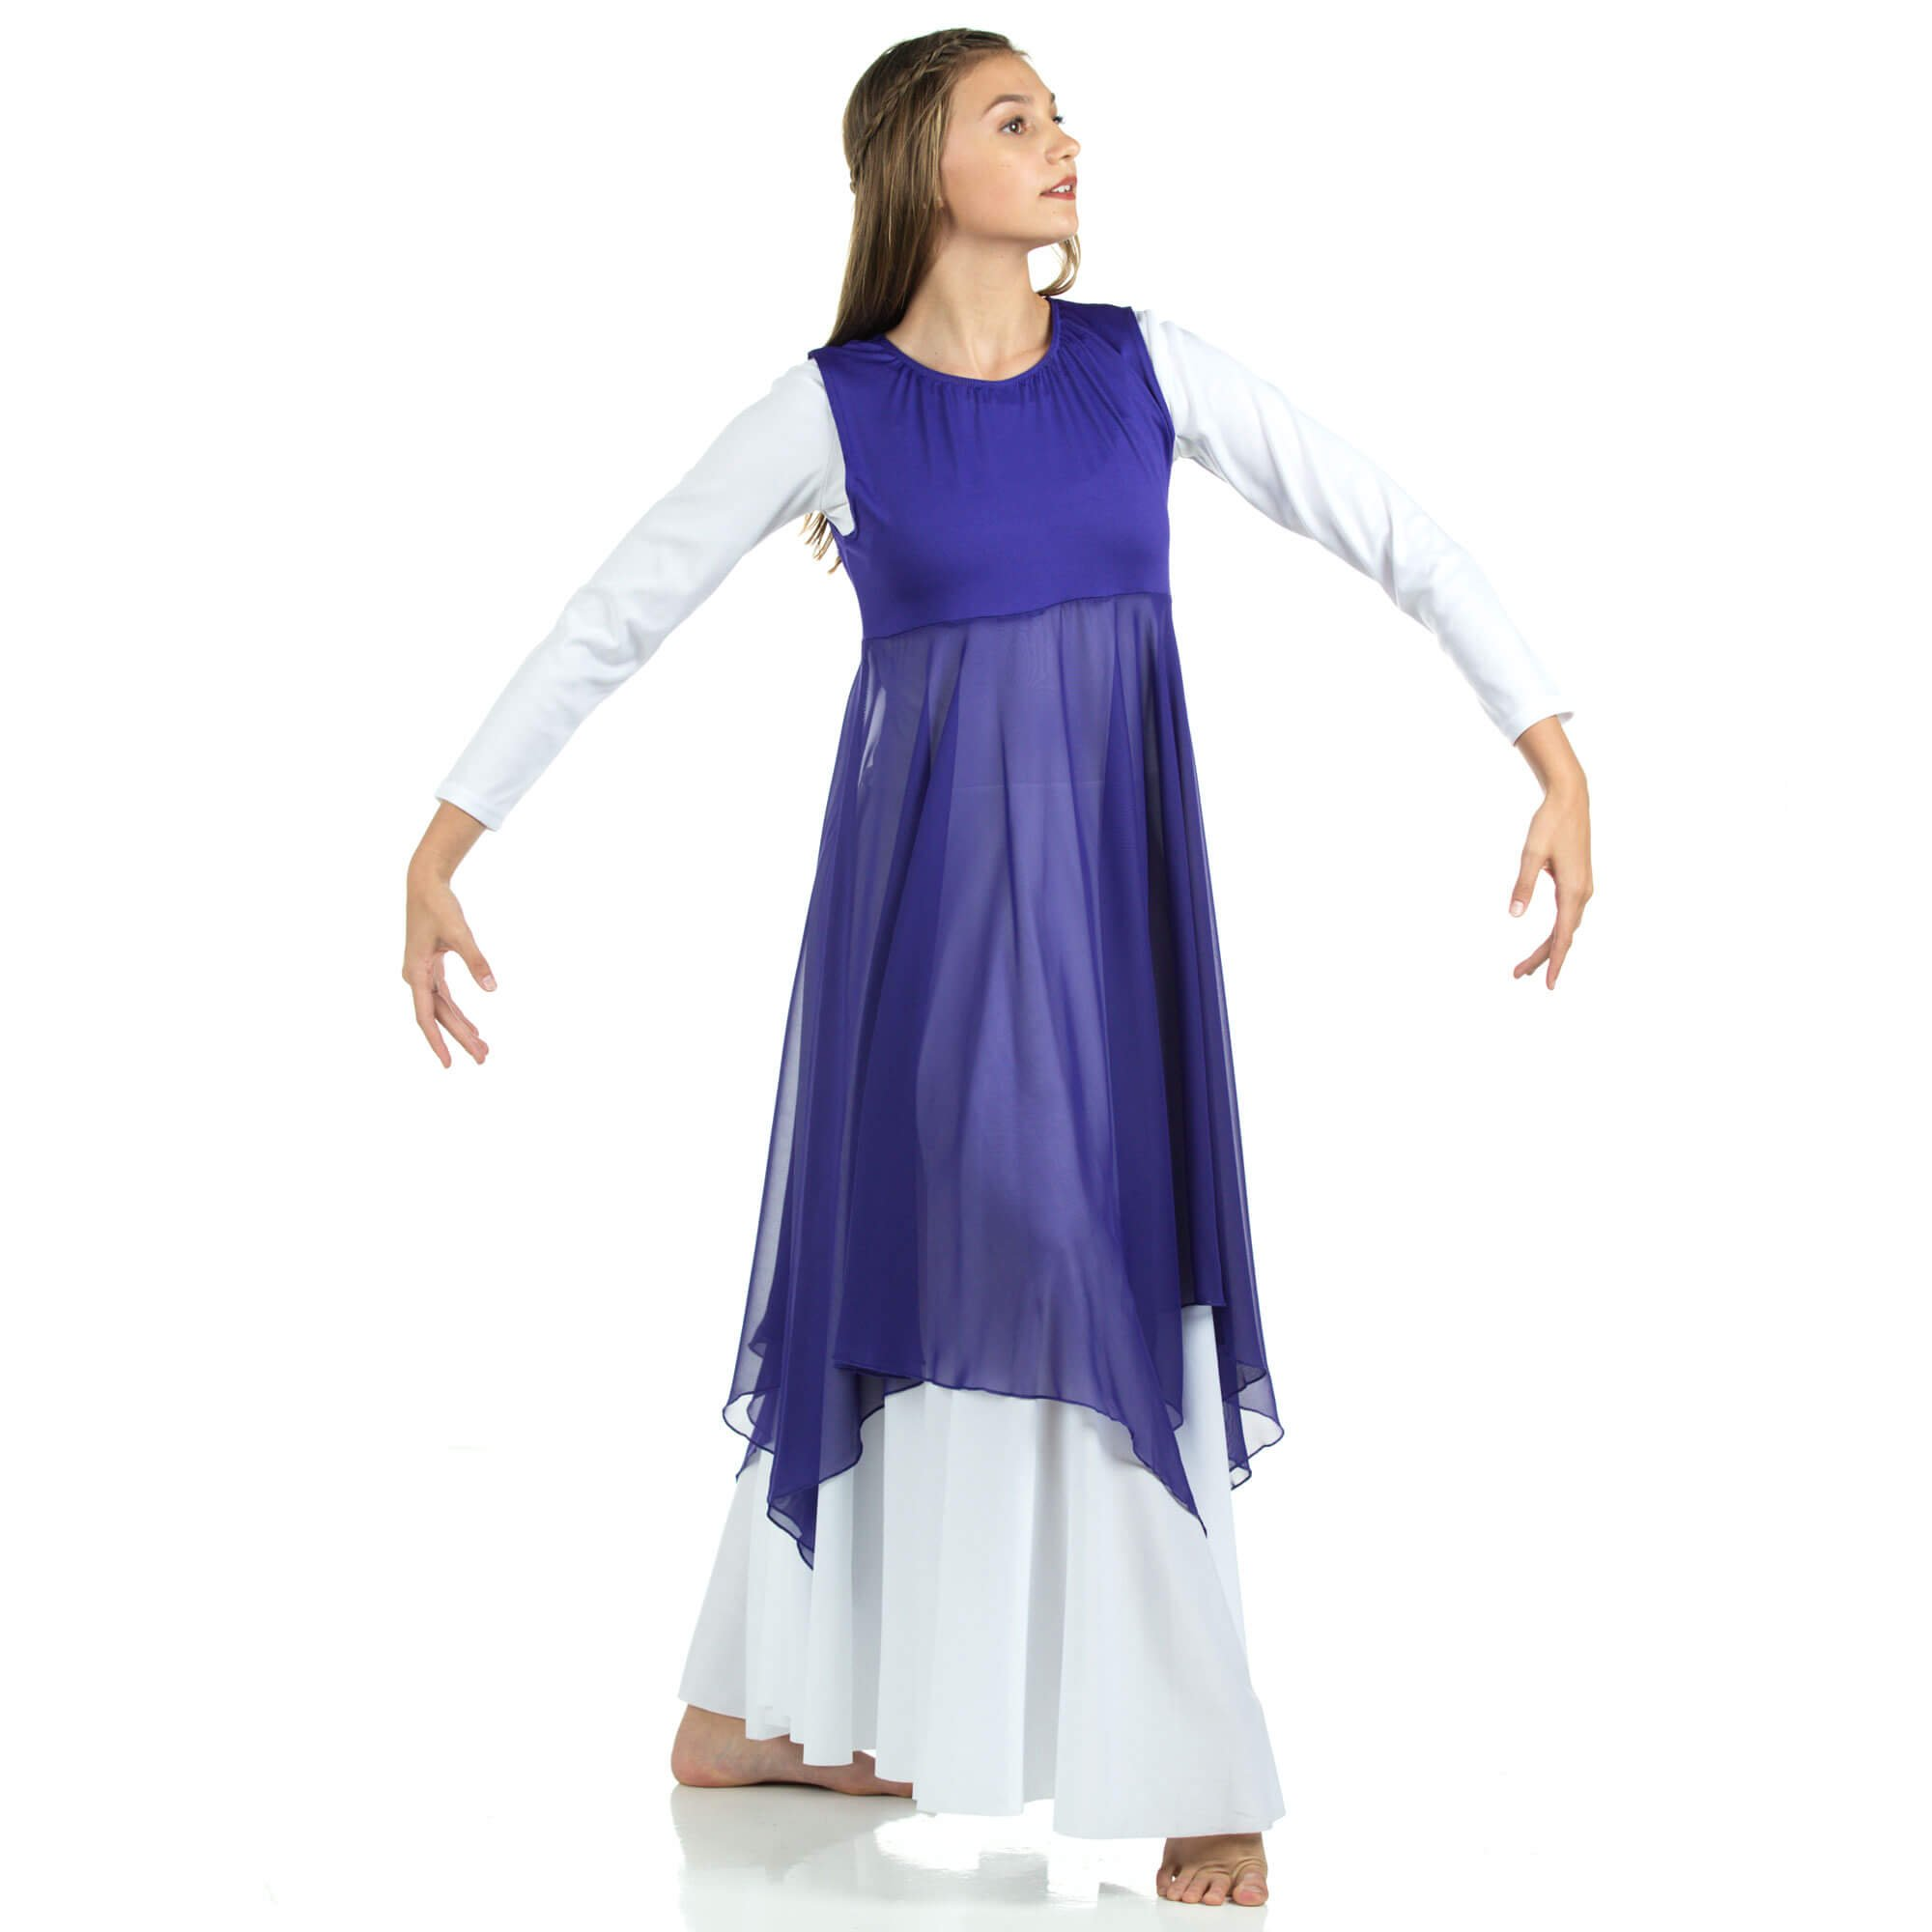 294b86cf09d8 Worship Dancewear: Pentecostal Dance Dress, mime costume, praise ...